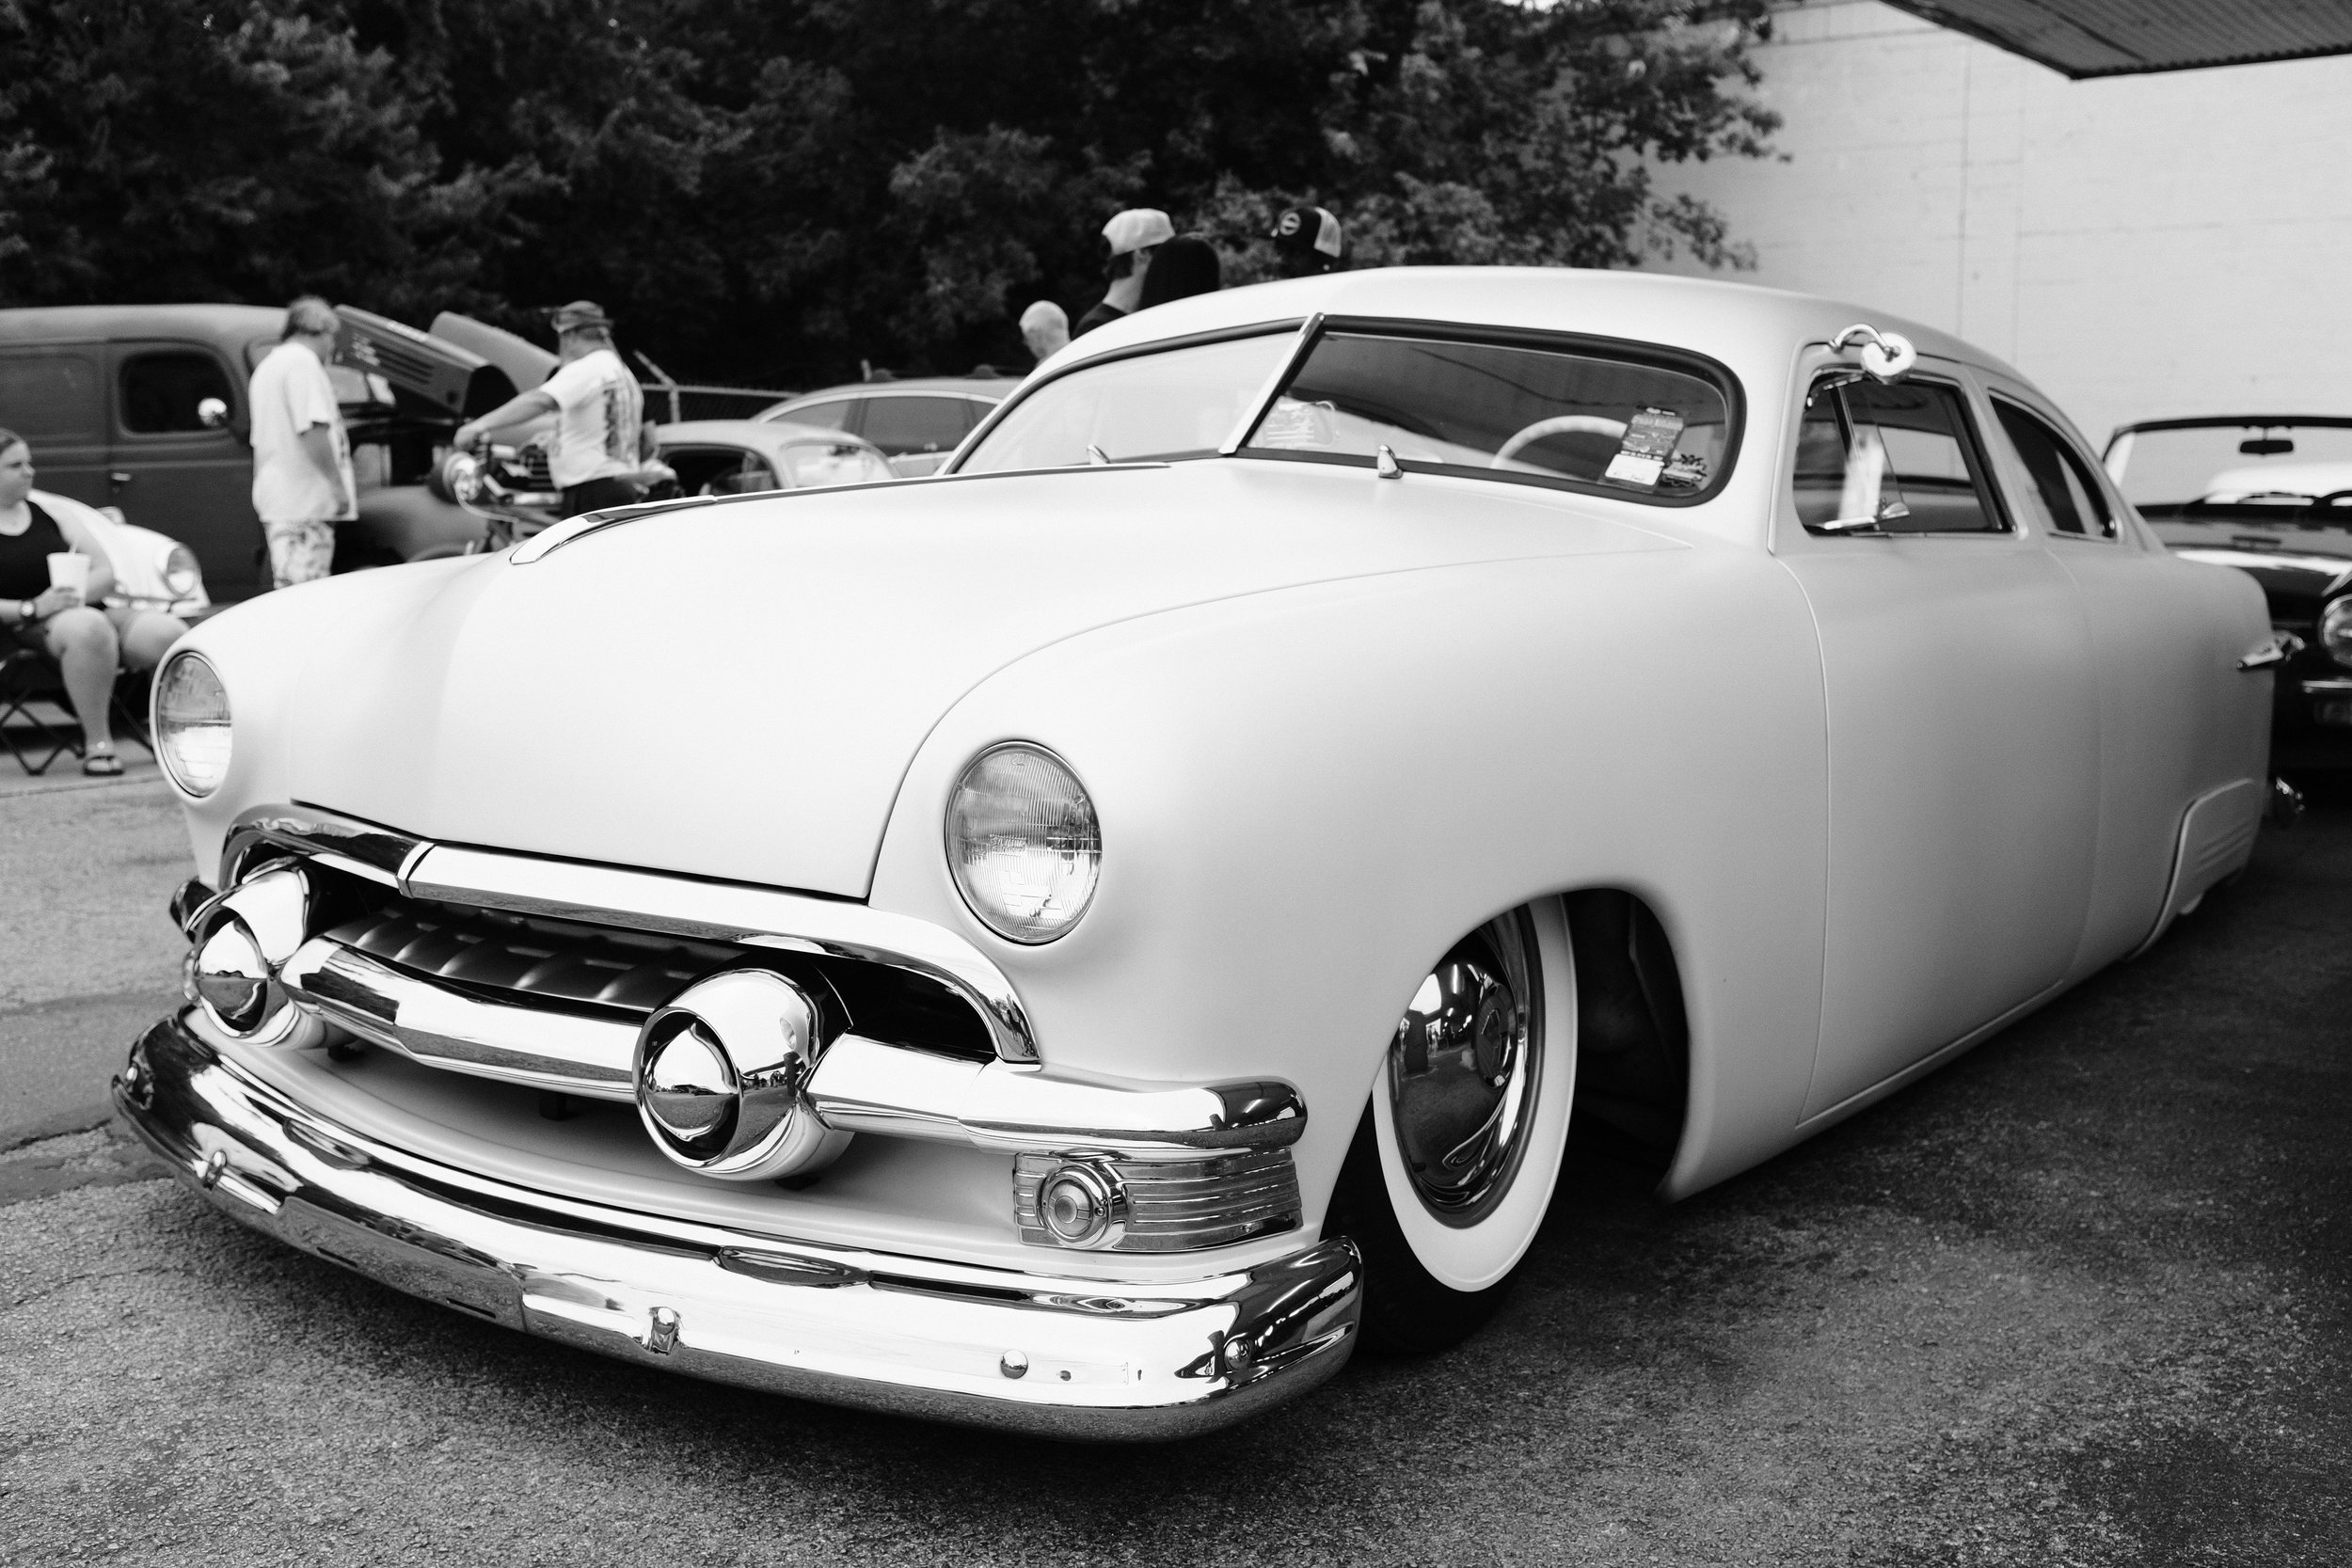 top-notch-hot-rods-08052017-4716.jpg